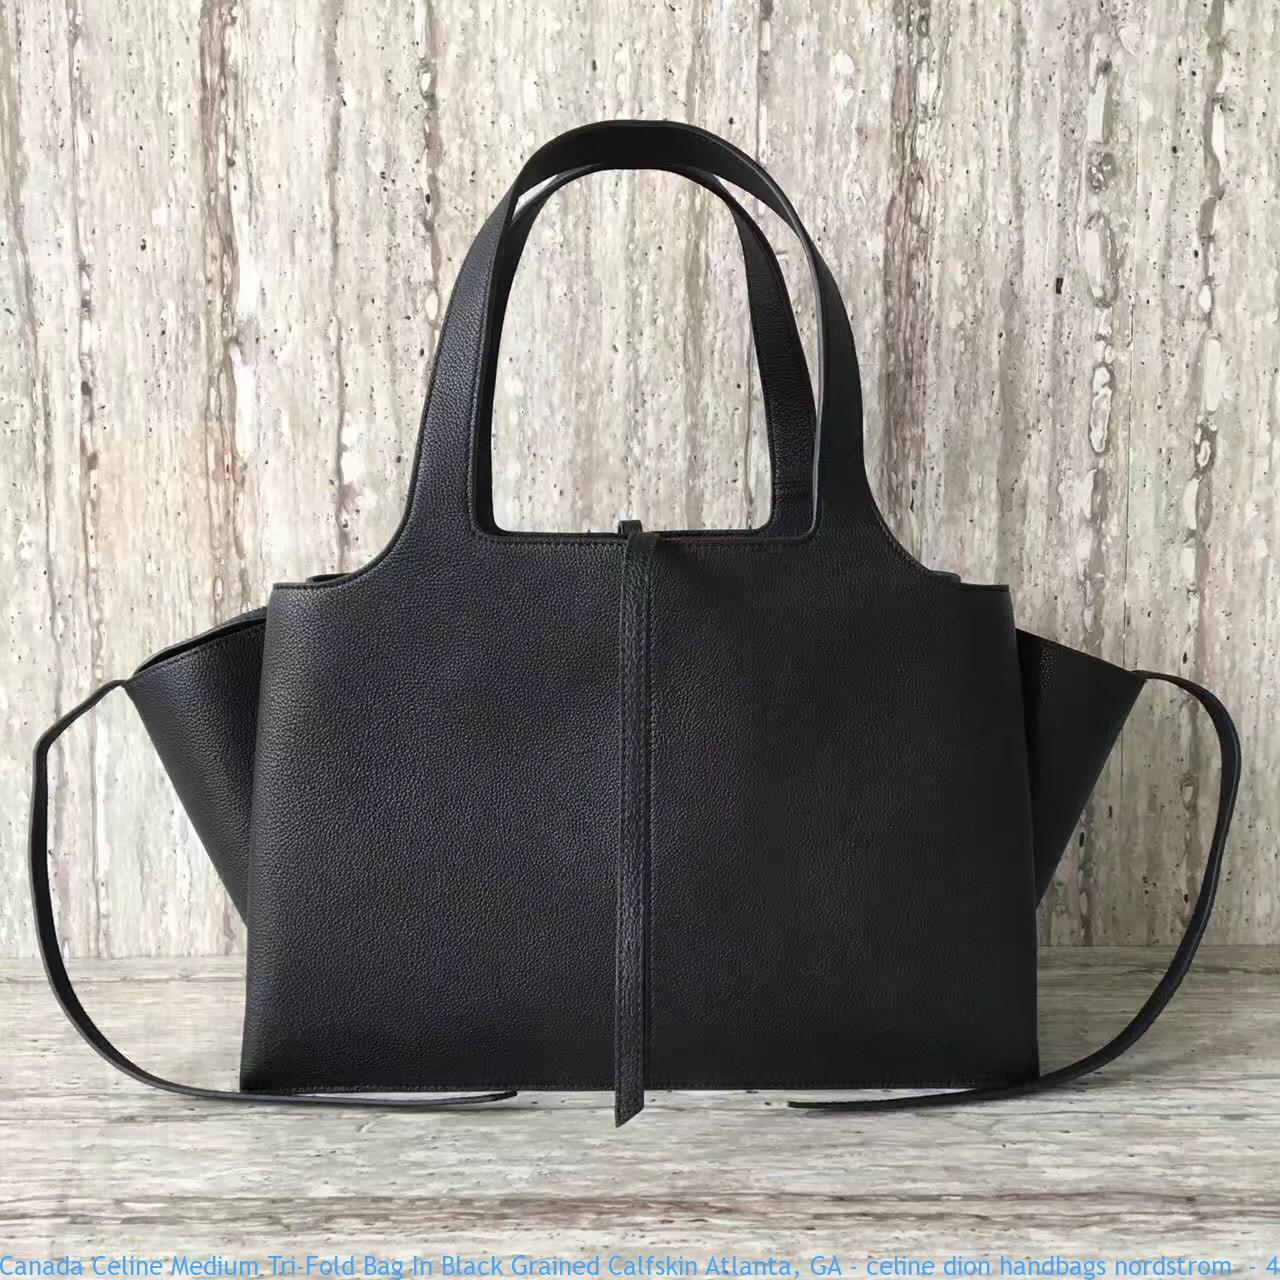 090f89d7cad8 Canada Celine Medium Tri-Fold Bag In Black Grained Calfskin Atlanta ...